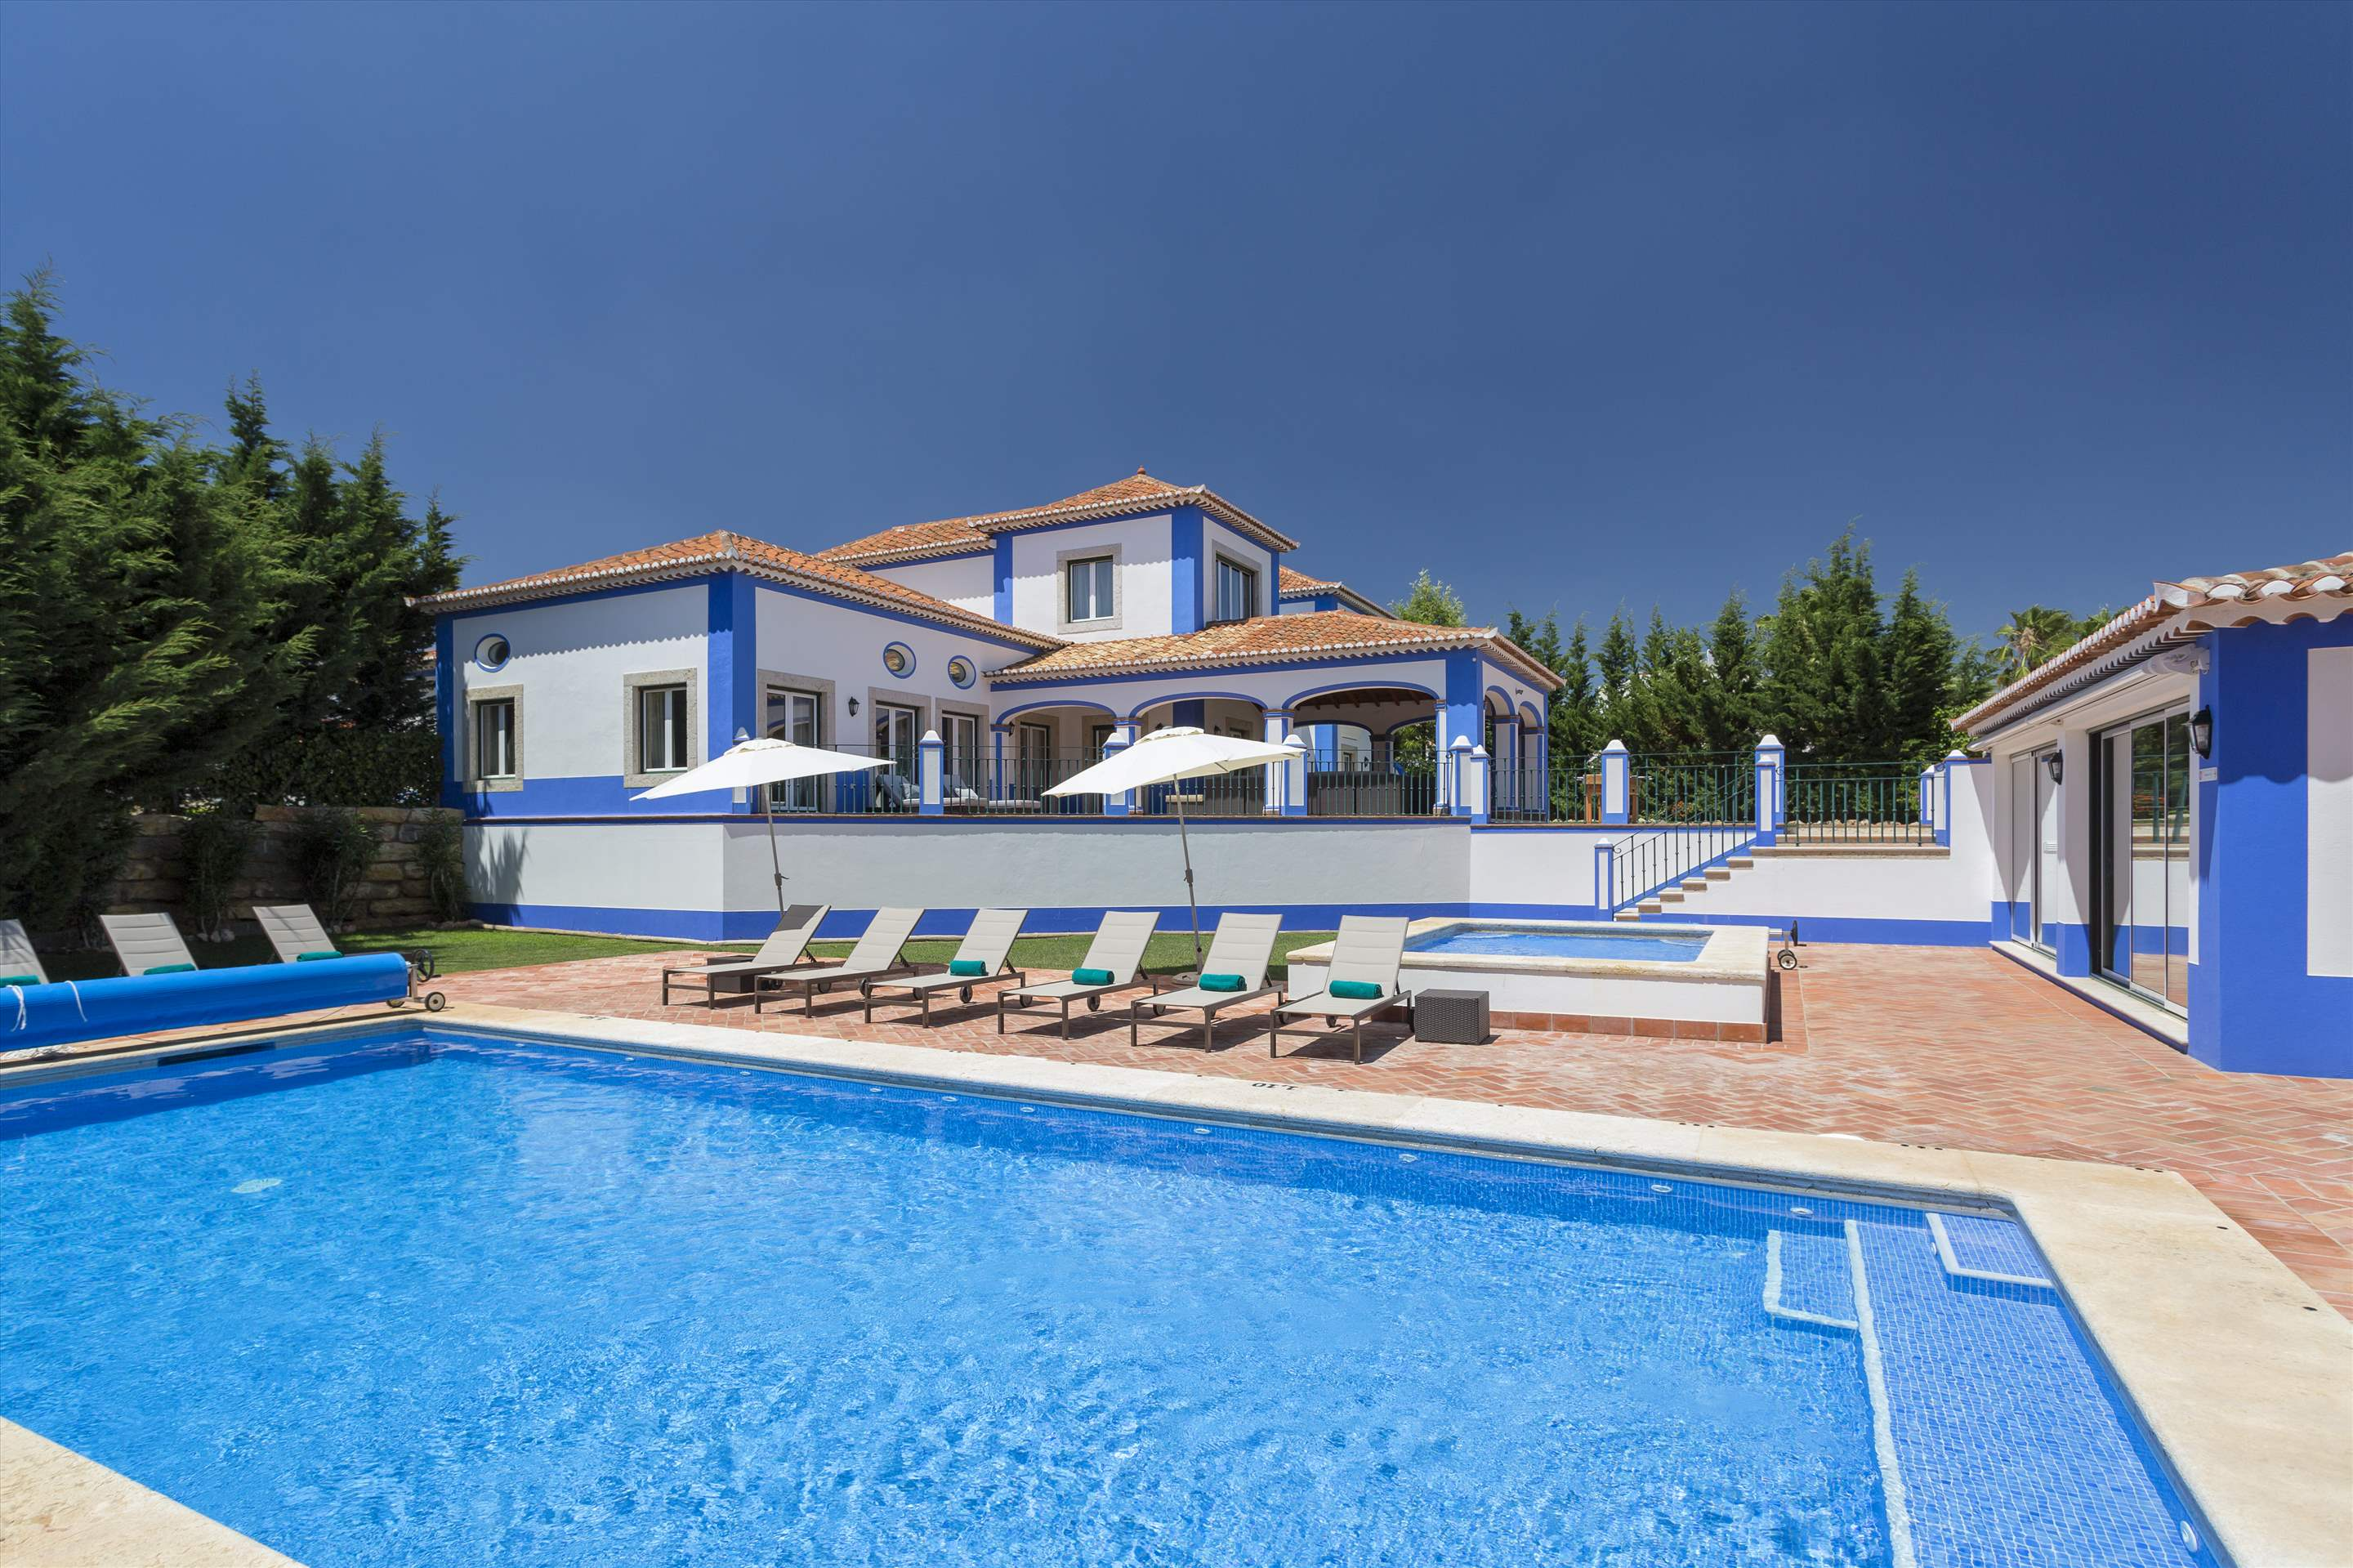 Villa Milho, Three Bedroom Rate, 3 bedroom villa in Vilamoura Area, Algarve Photo #1